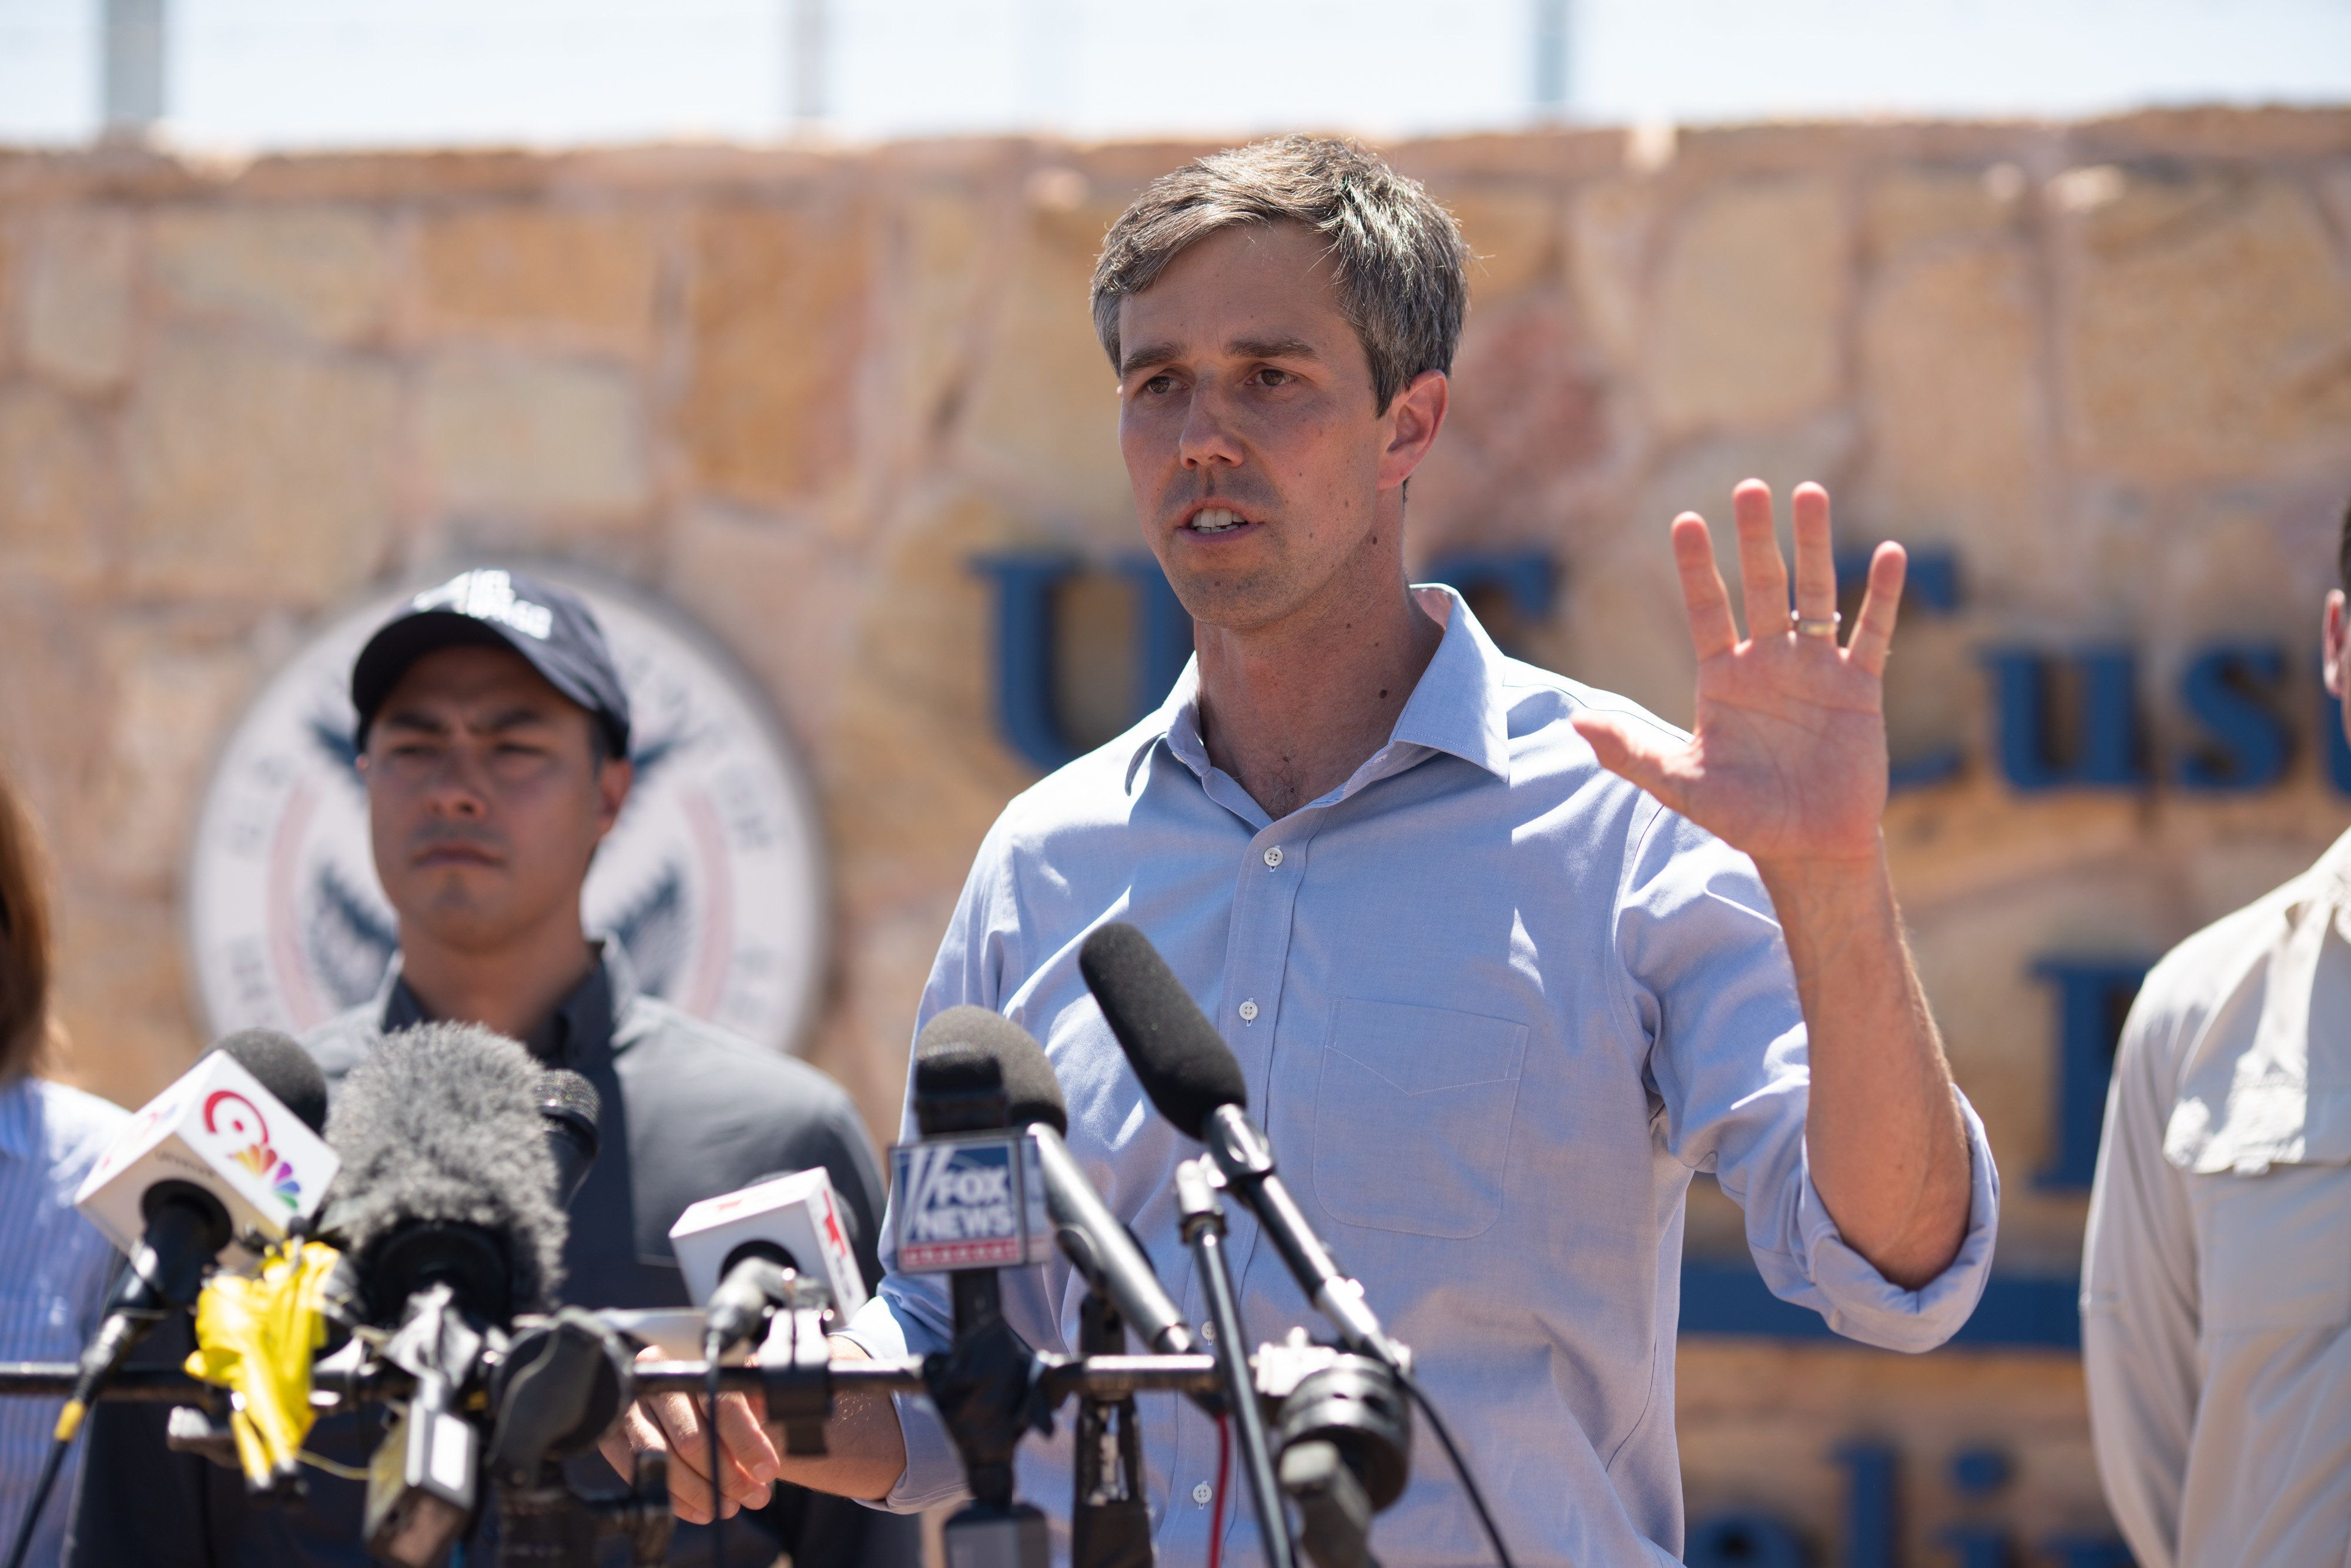 Texas Congressman Beto O'Rourke addresses the press after he and other politicians visited the tent city  June 23, 2018 in Tornillo, Texas, housing immigrant children separated from their parents because of the Trump administration's zero tolerance policy. - He described the conditions of the camp to be good, but that it didn't excuse the actions of the Trump adminstration. (Photo by Paul Ratje / AFP)        (Photo credit should read PAUL RATJE/AFP/Getty Images)